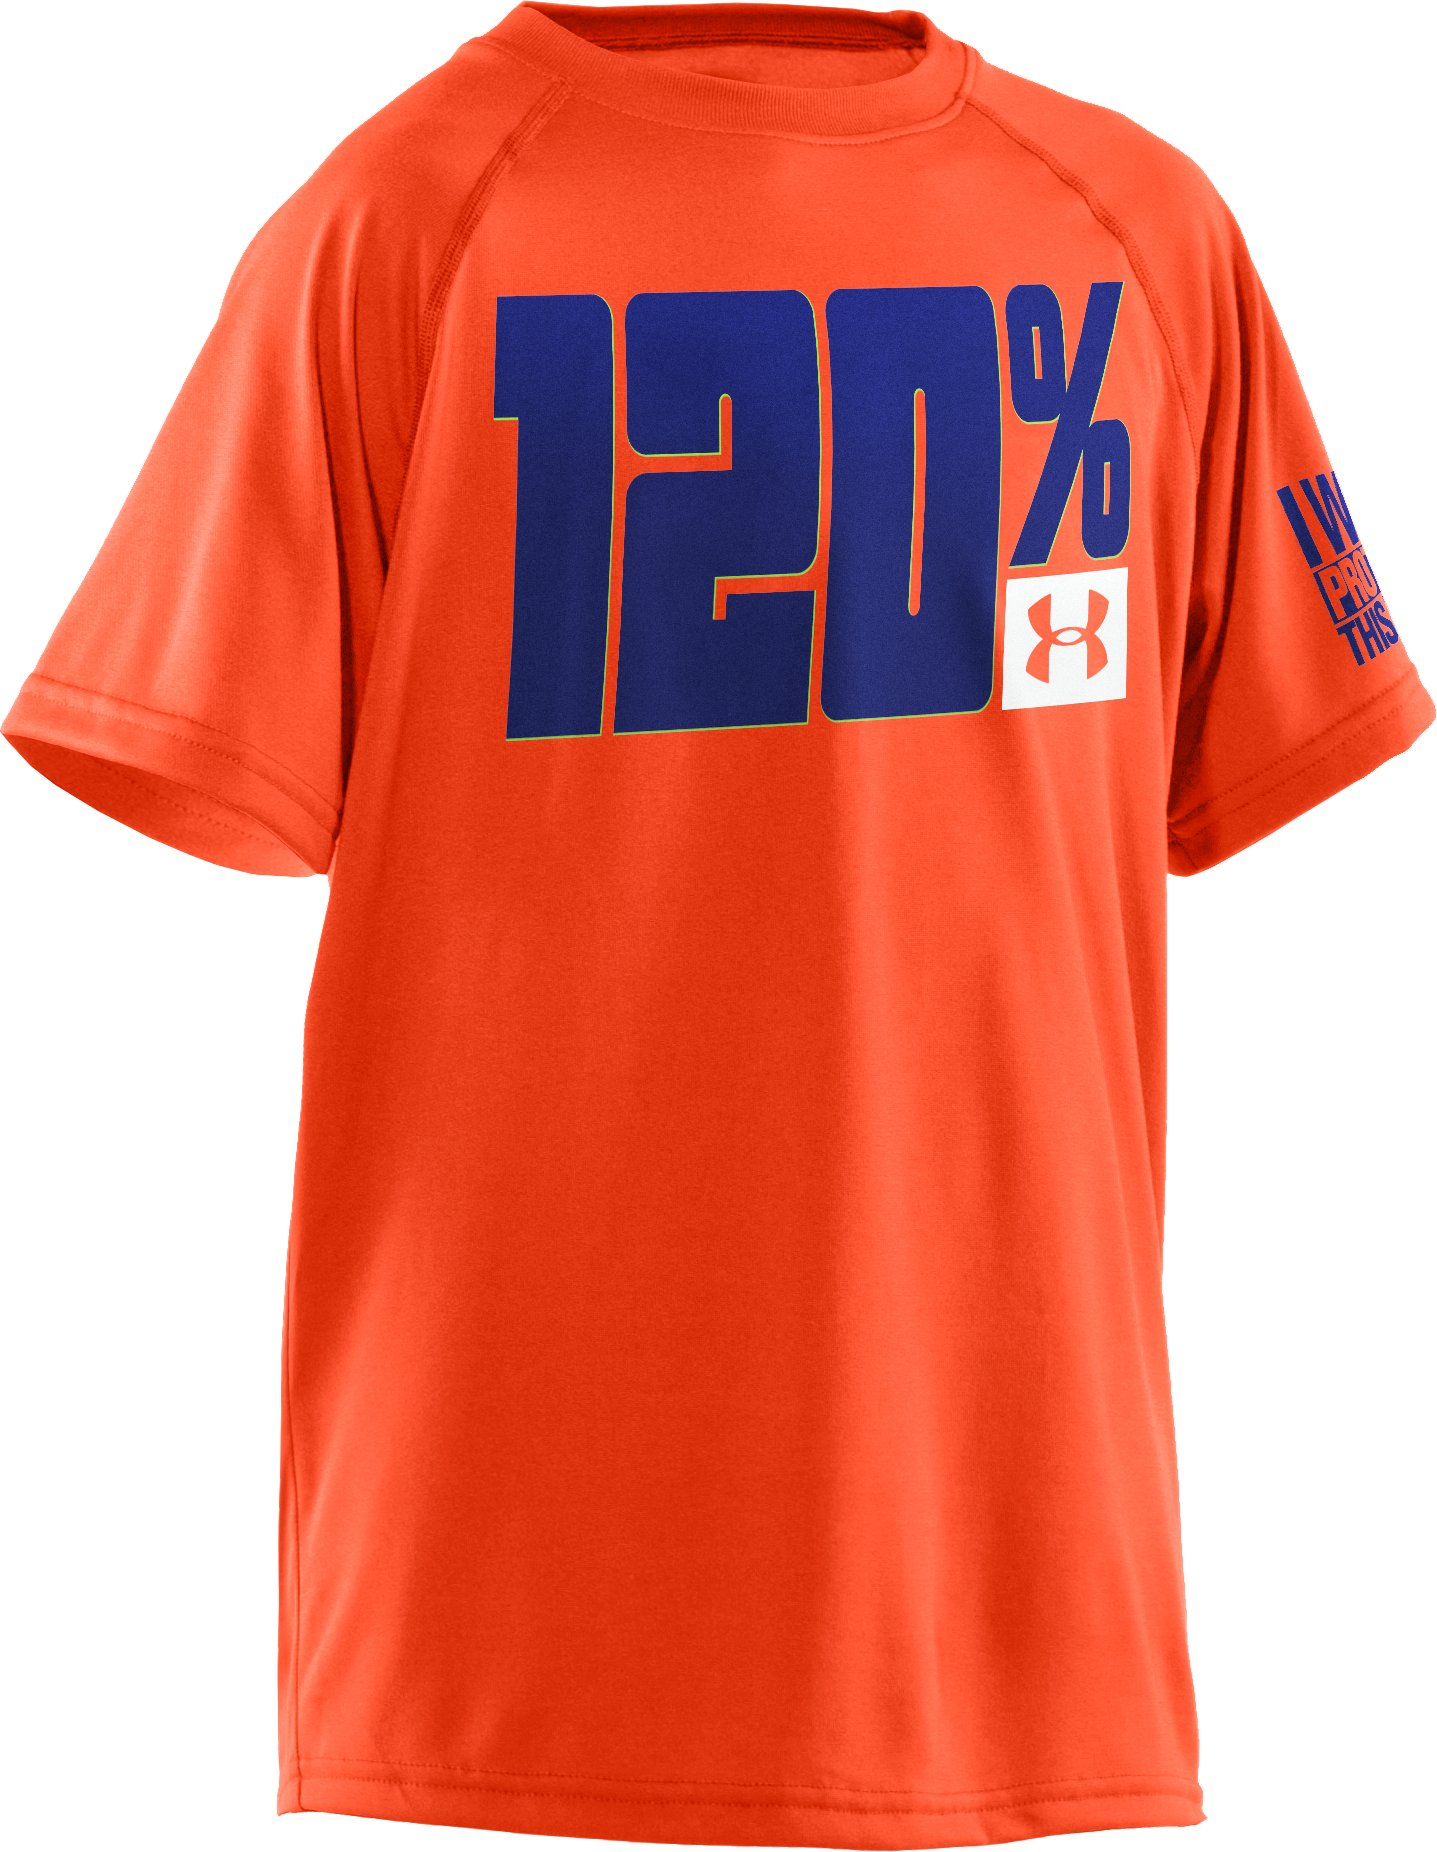 Boys' UA 120% T-Shirt, Toxic